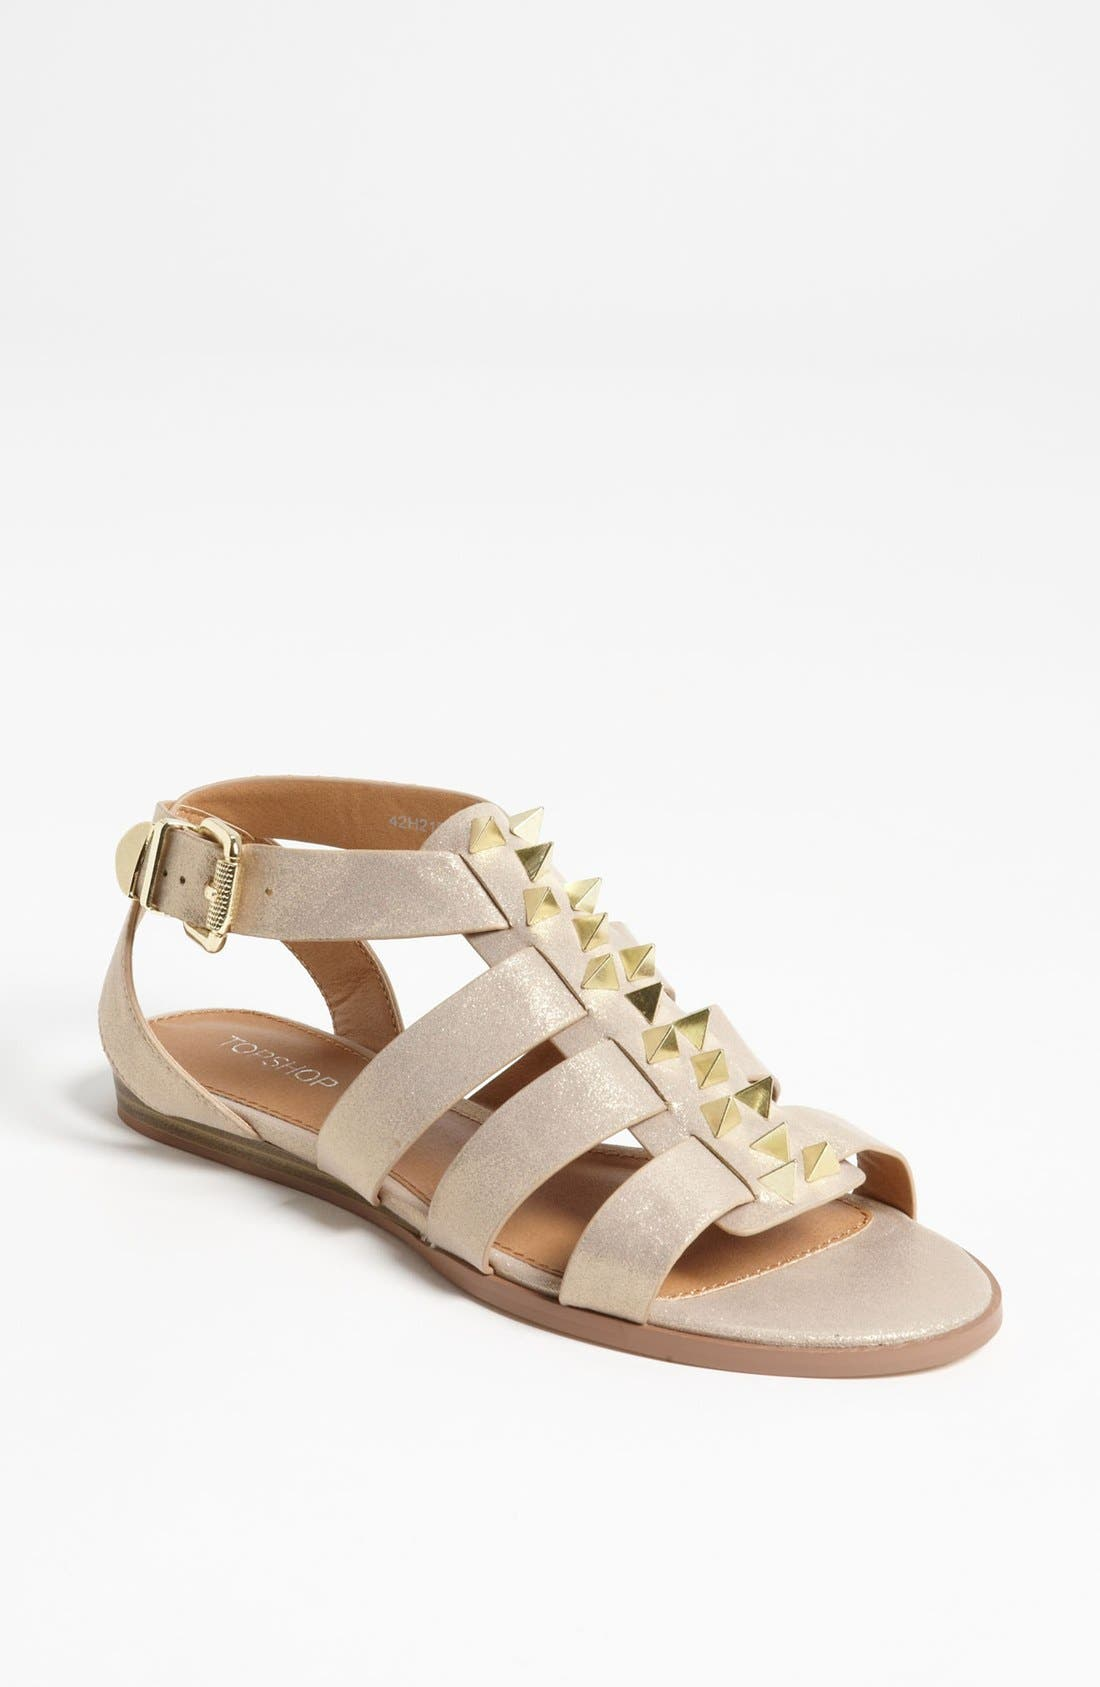 Alternate Image 1 Selected - Topshop 'Hope Stud' Gladiator Sandal